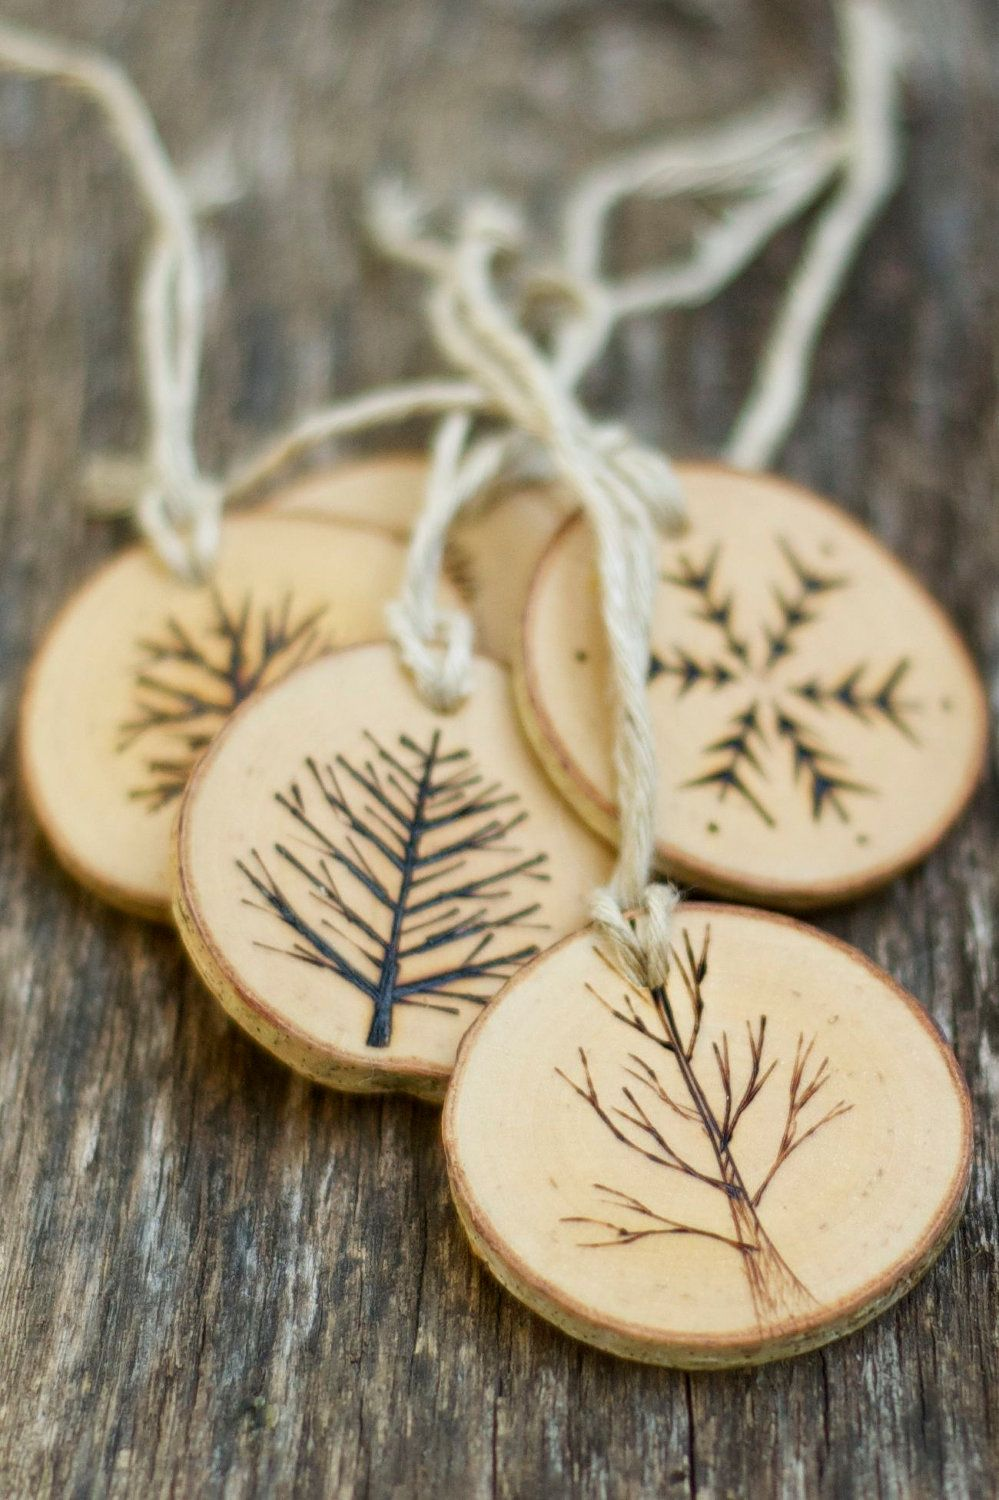 Tree Branch Christmas Ornaments - Wood Burned Trees and Snowflakes ...